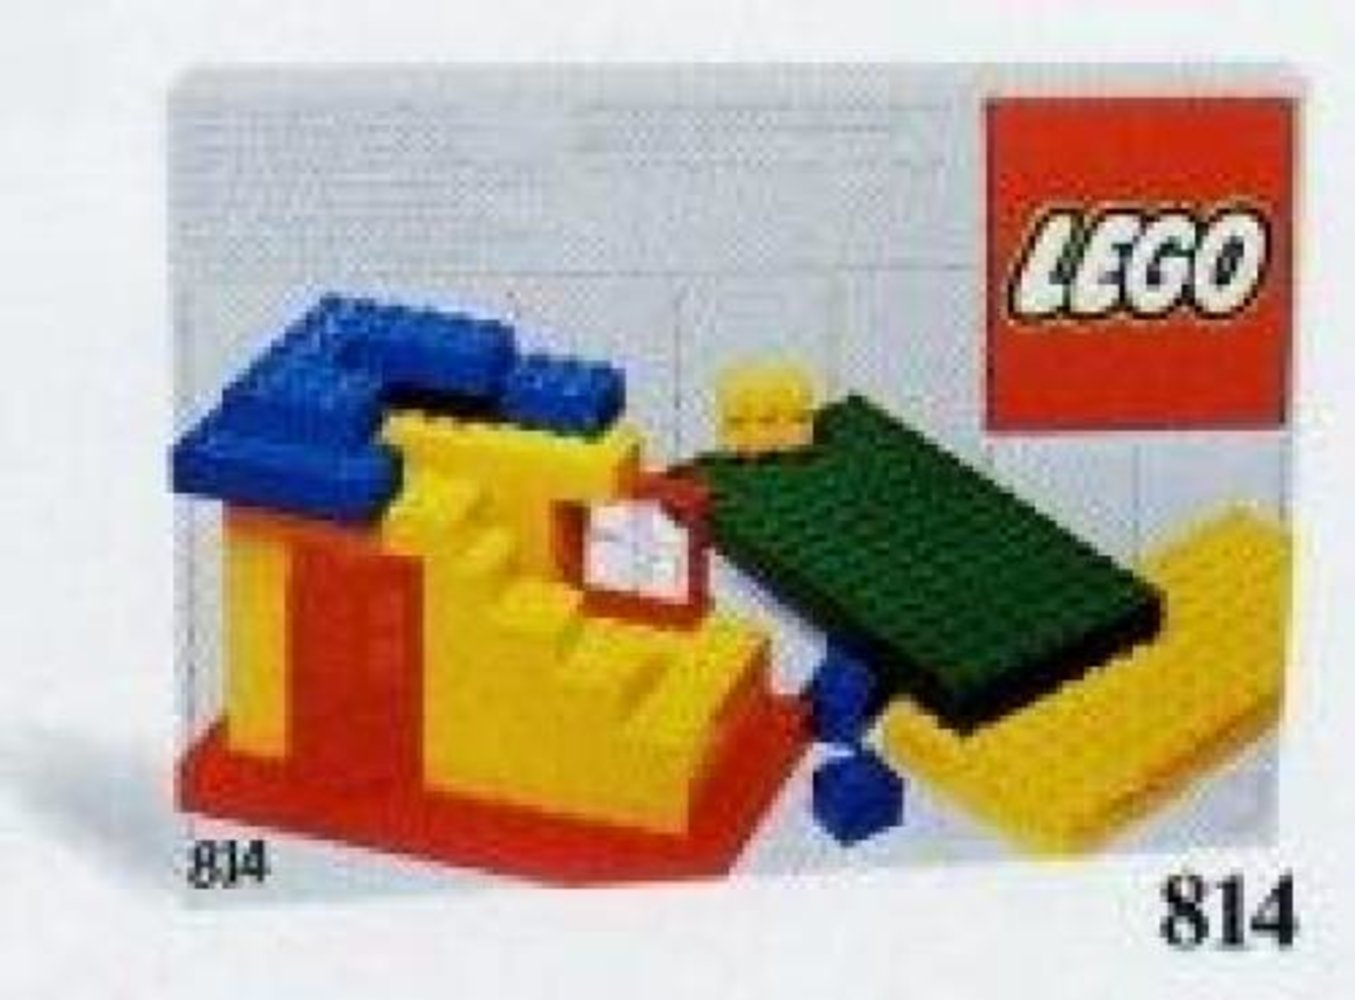 Baseplates, Green, Red and Yellow